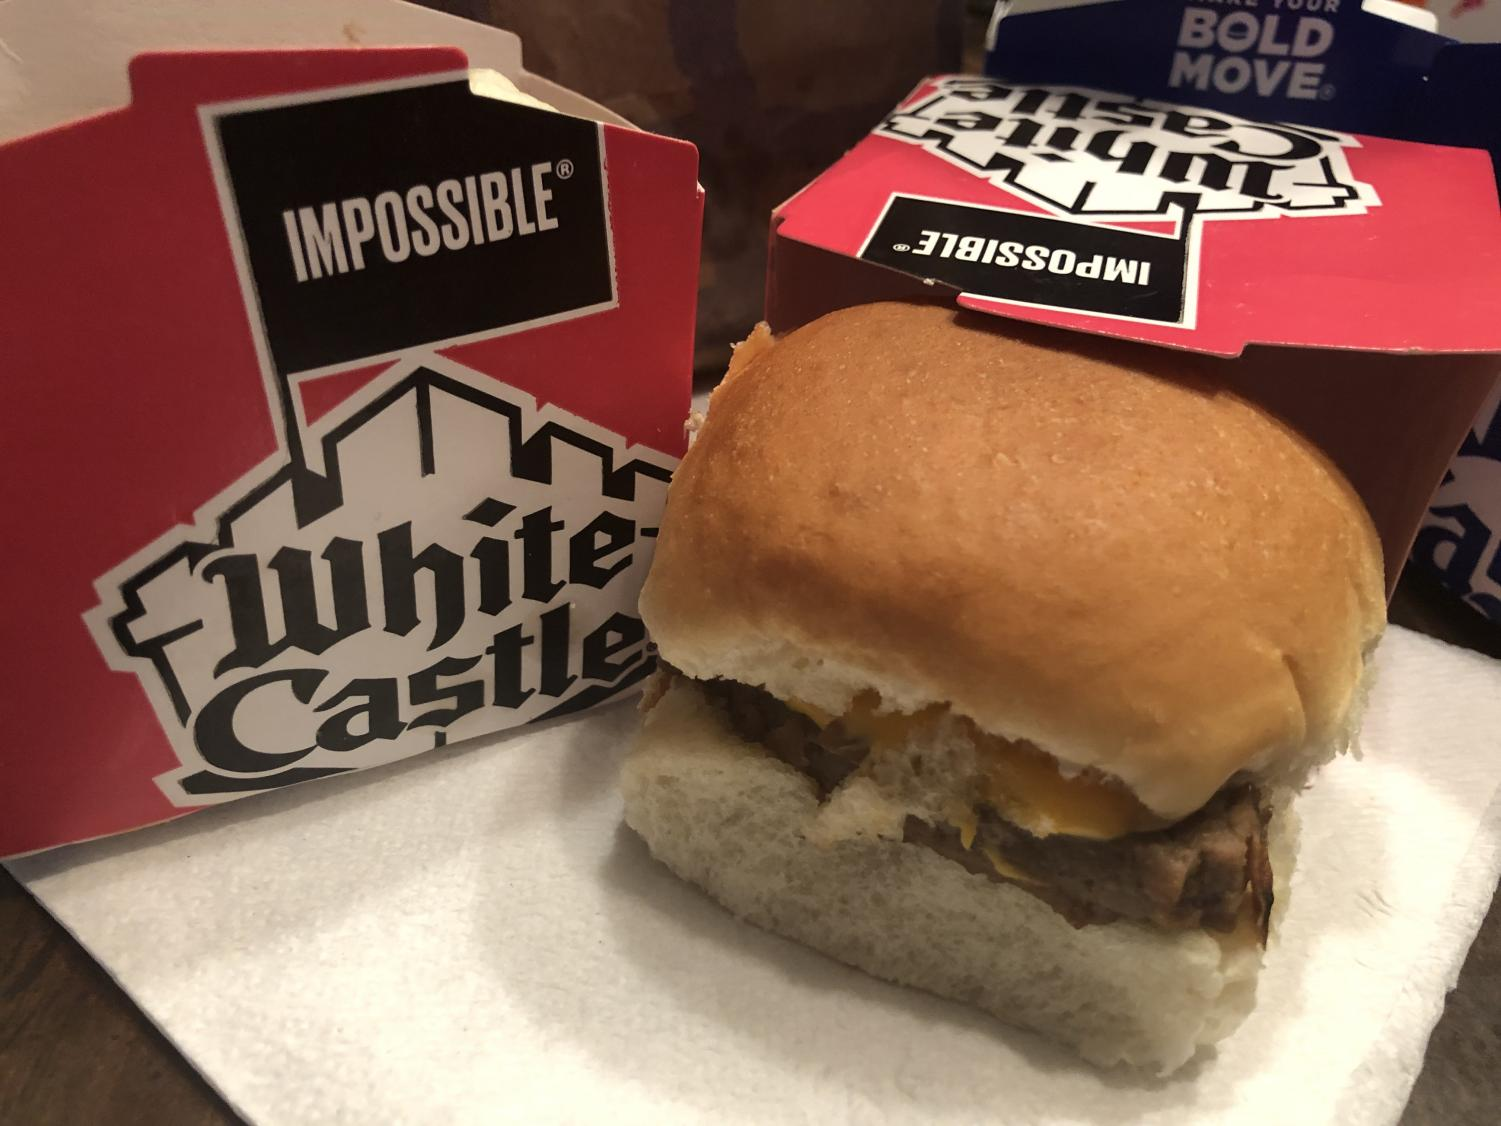 Both White Castle and Burger King offer Impossible Foods plant-based menu items. When asked on how the Impossible Whopper tastes, junior Roger Lopez thinks that Impossible burgers have their taste perfected.